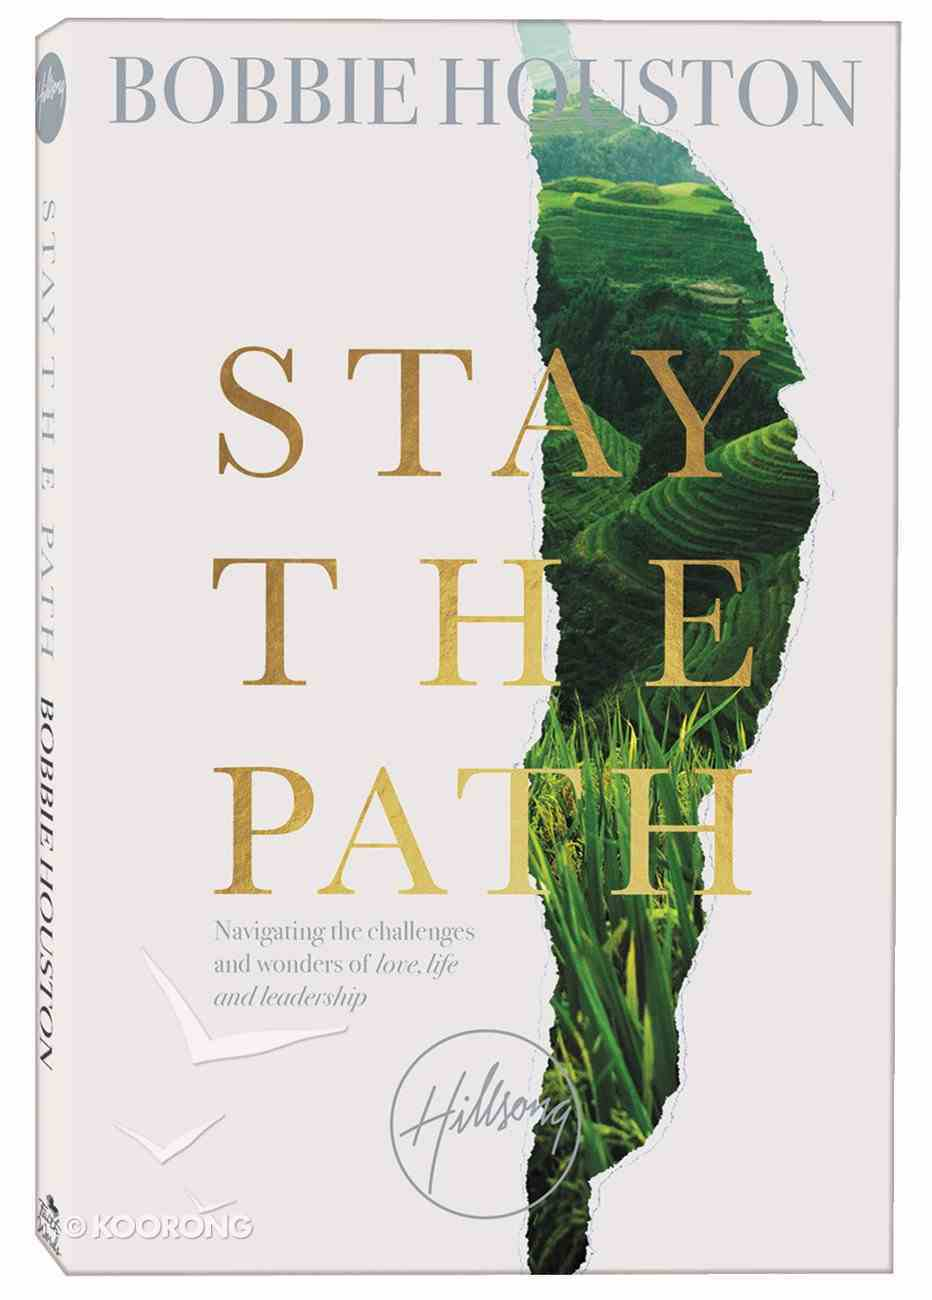 Stay the Path: Navigating the Challenges and Wonder of Life, Love, and Leadership Paperback